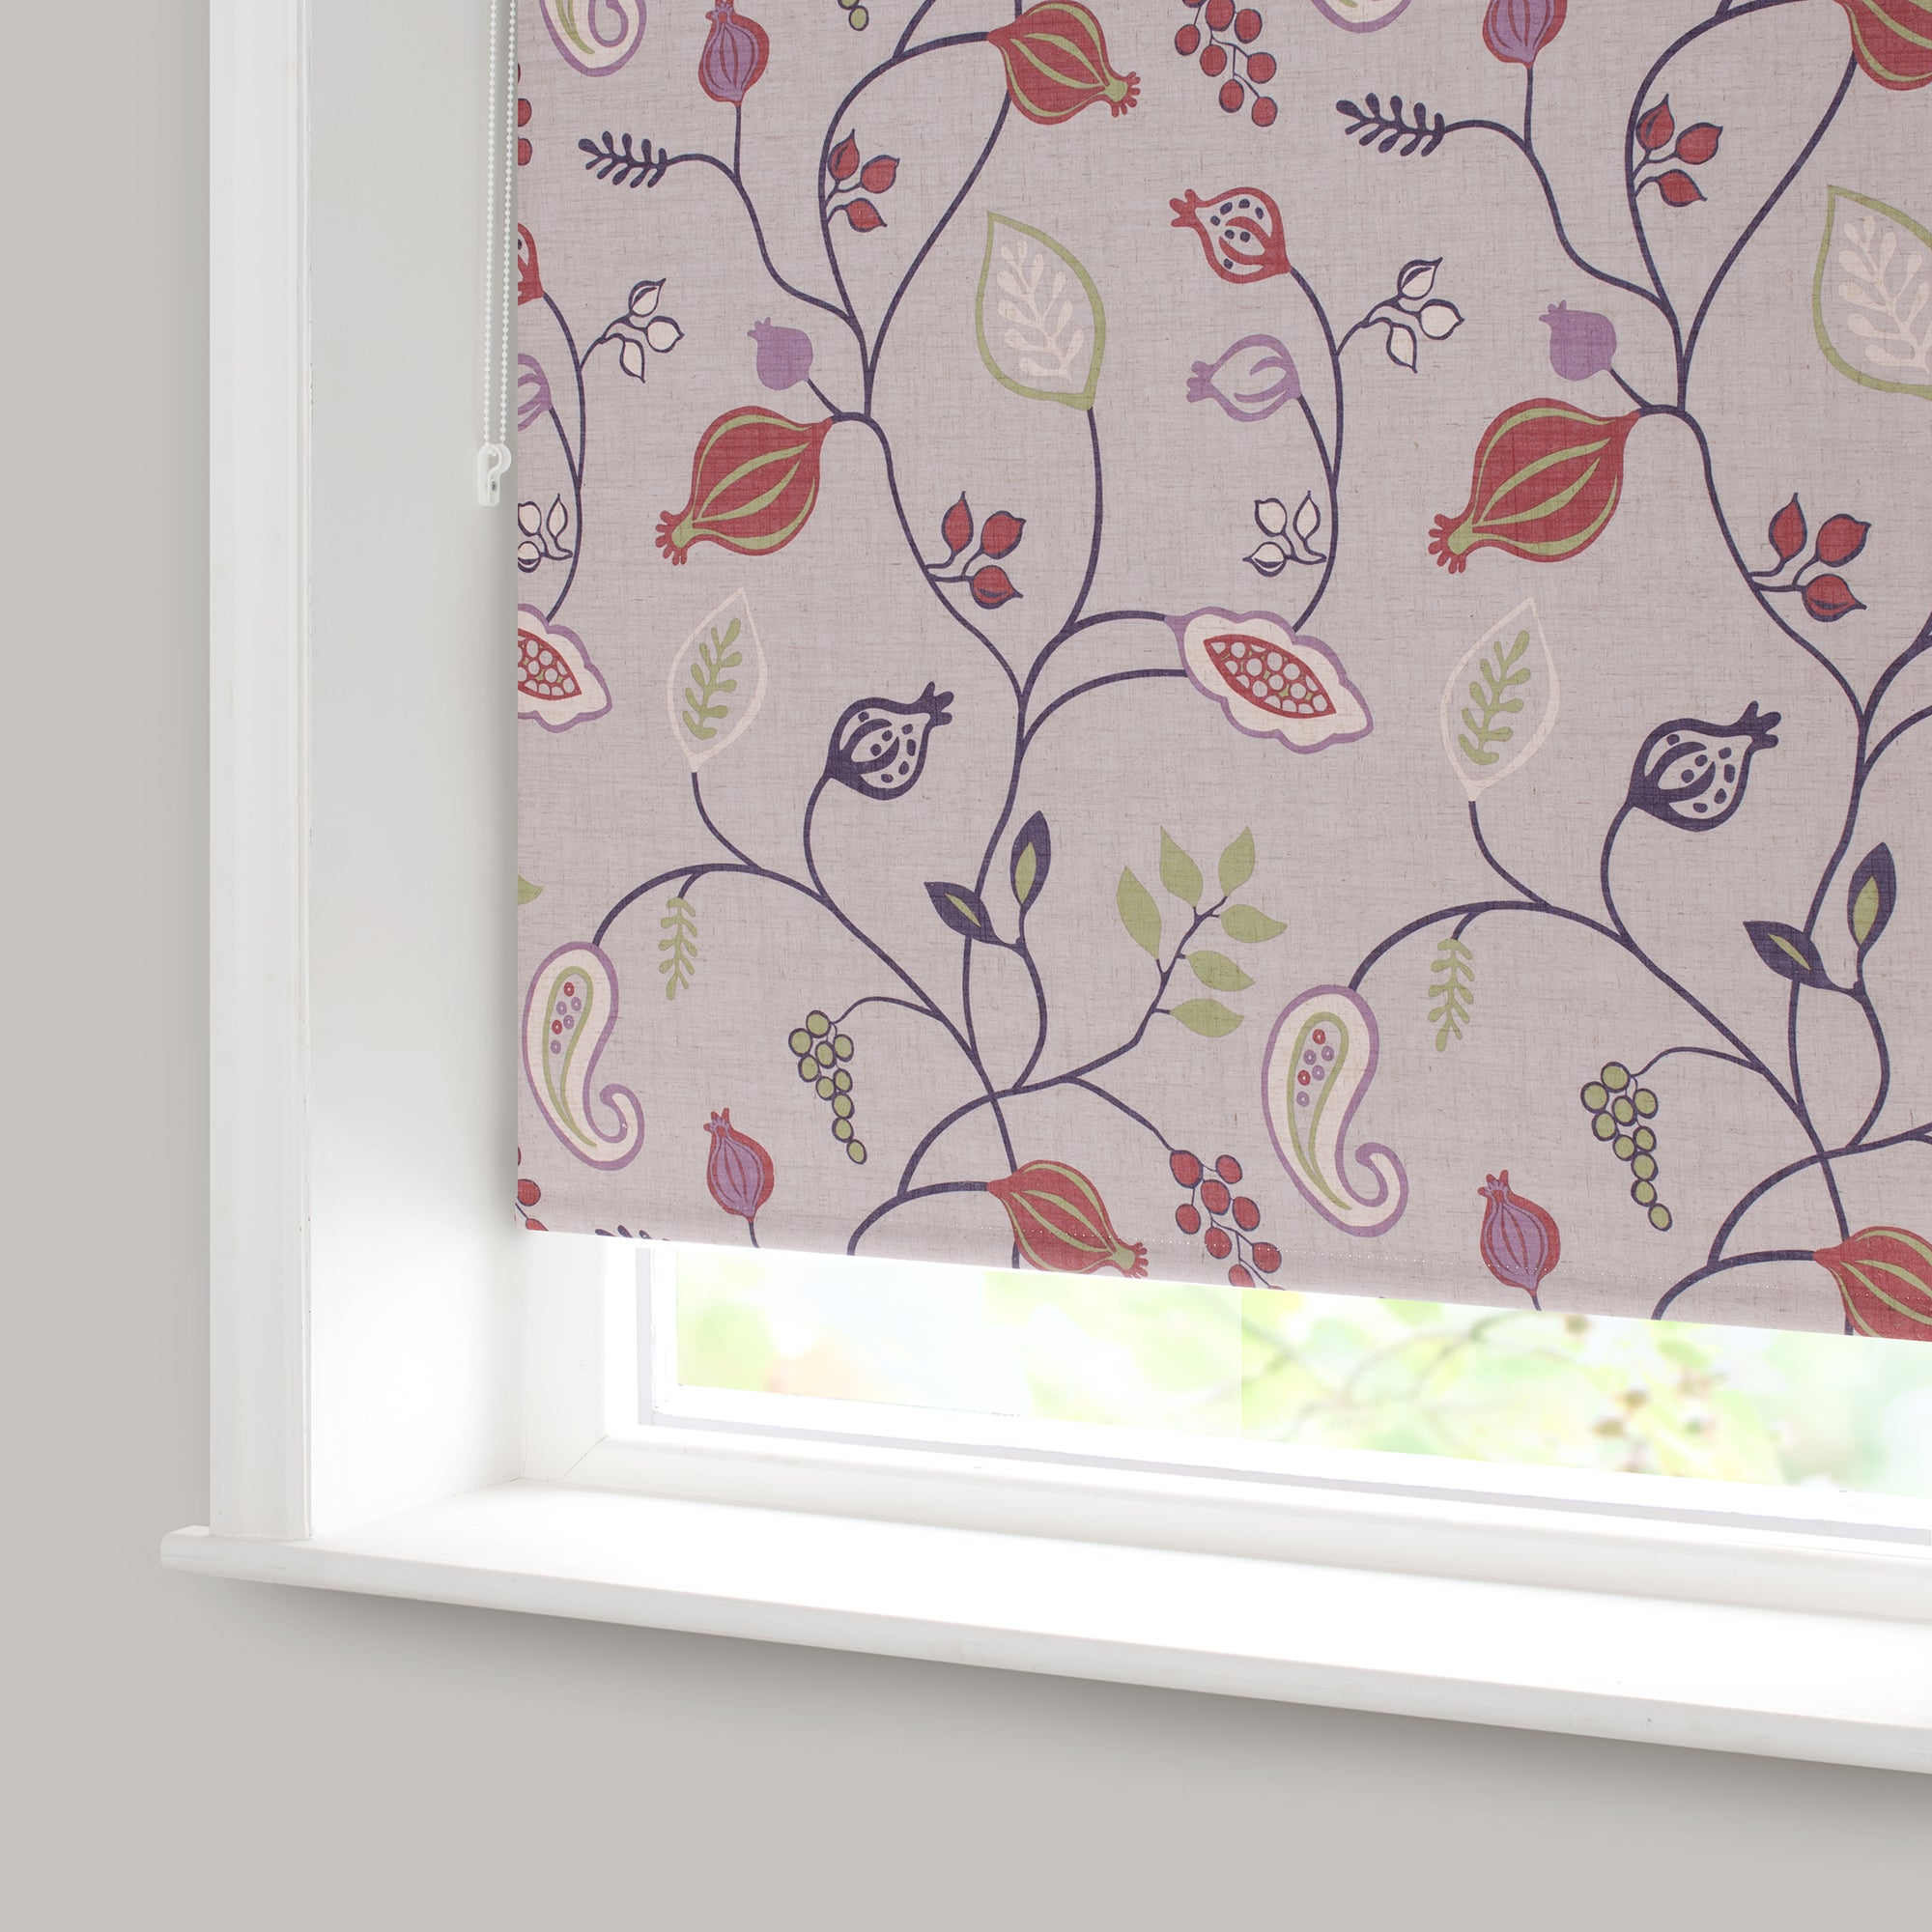 Buckleberry Blackout Roller Blind